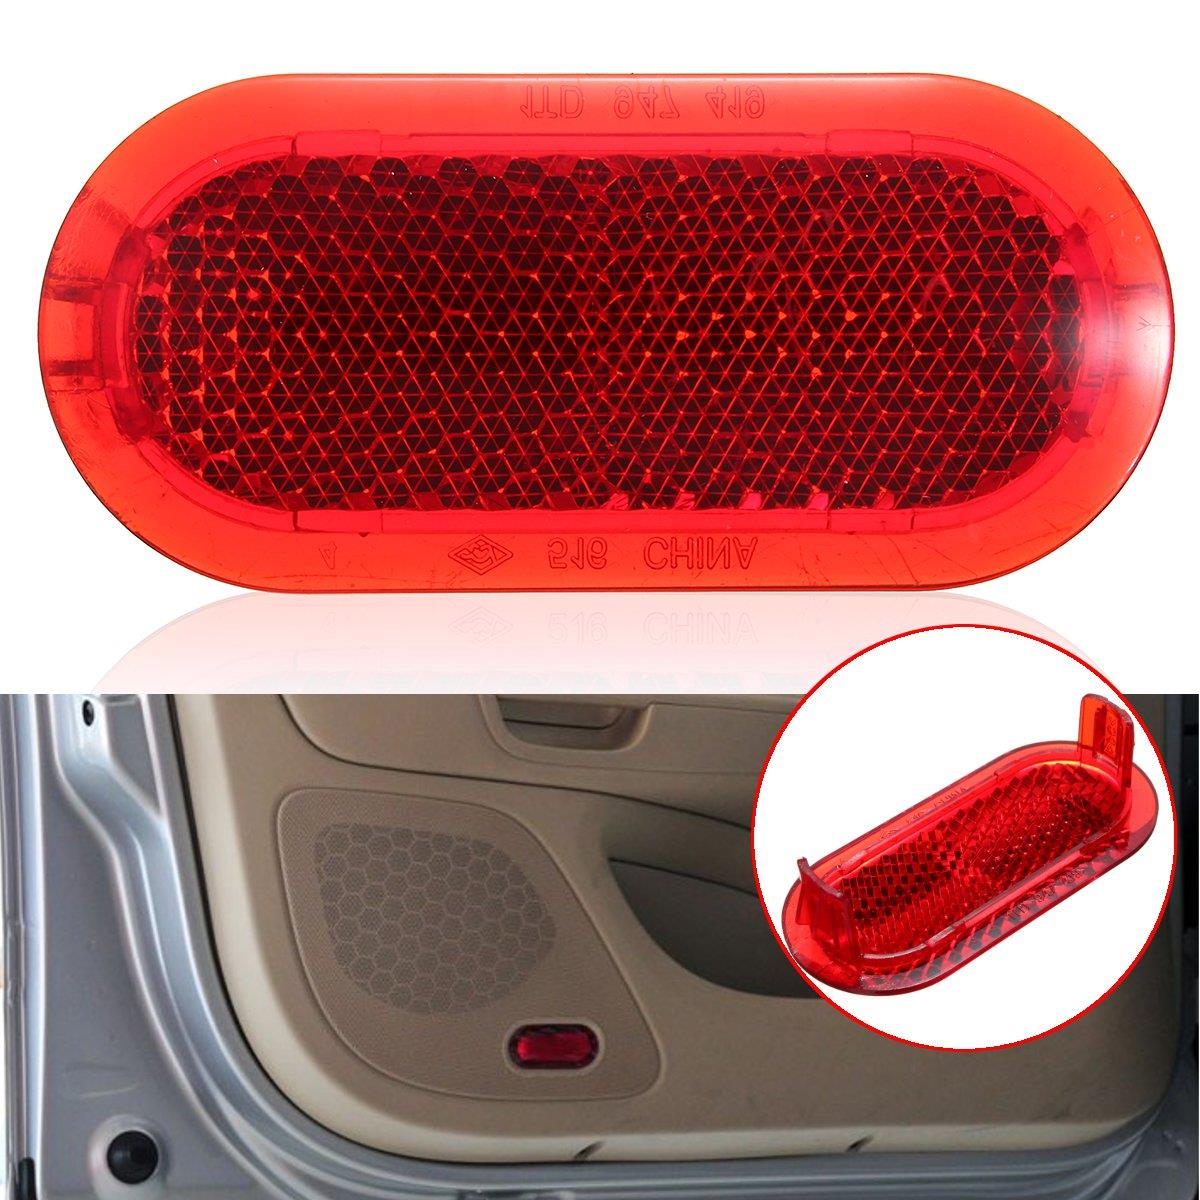 1pcs car auto door interior courtesy door red warning light reflector for vw beetle caddy polo. Black Bedroom Furniture Sets. Home Design Ideas